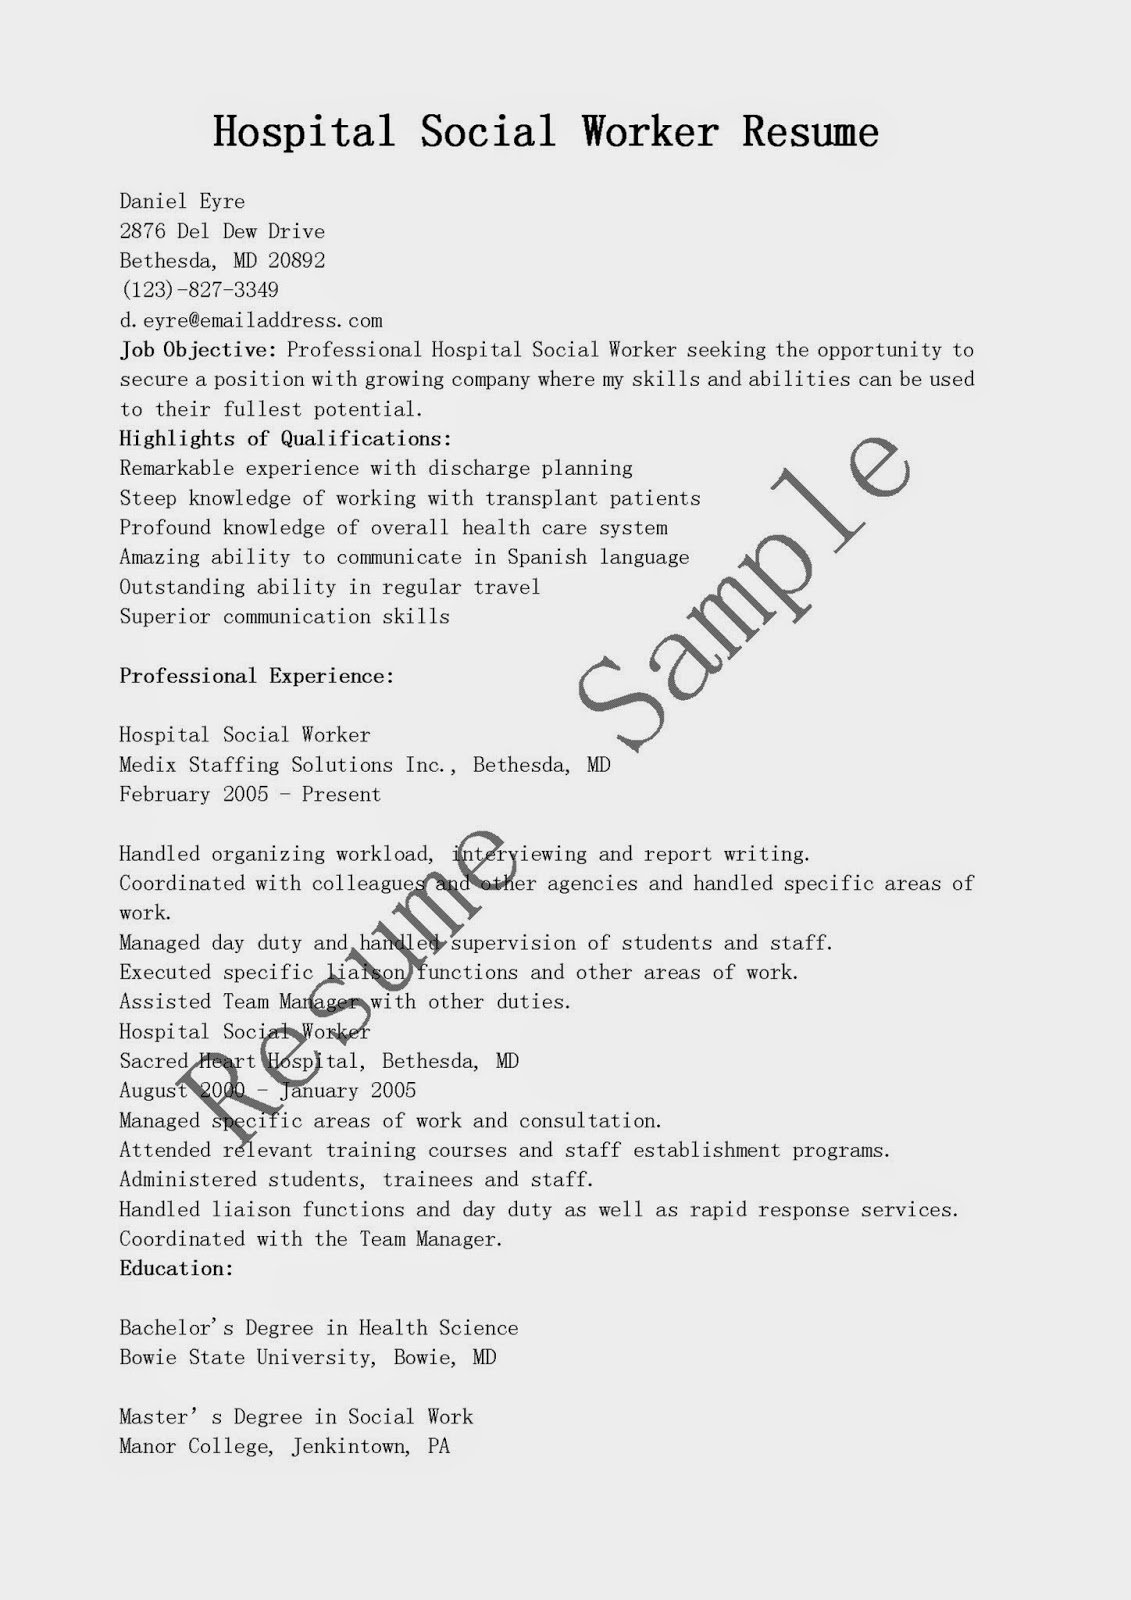 resume samples  hospital social worker resume sample